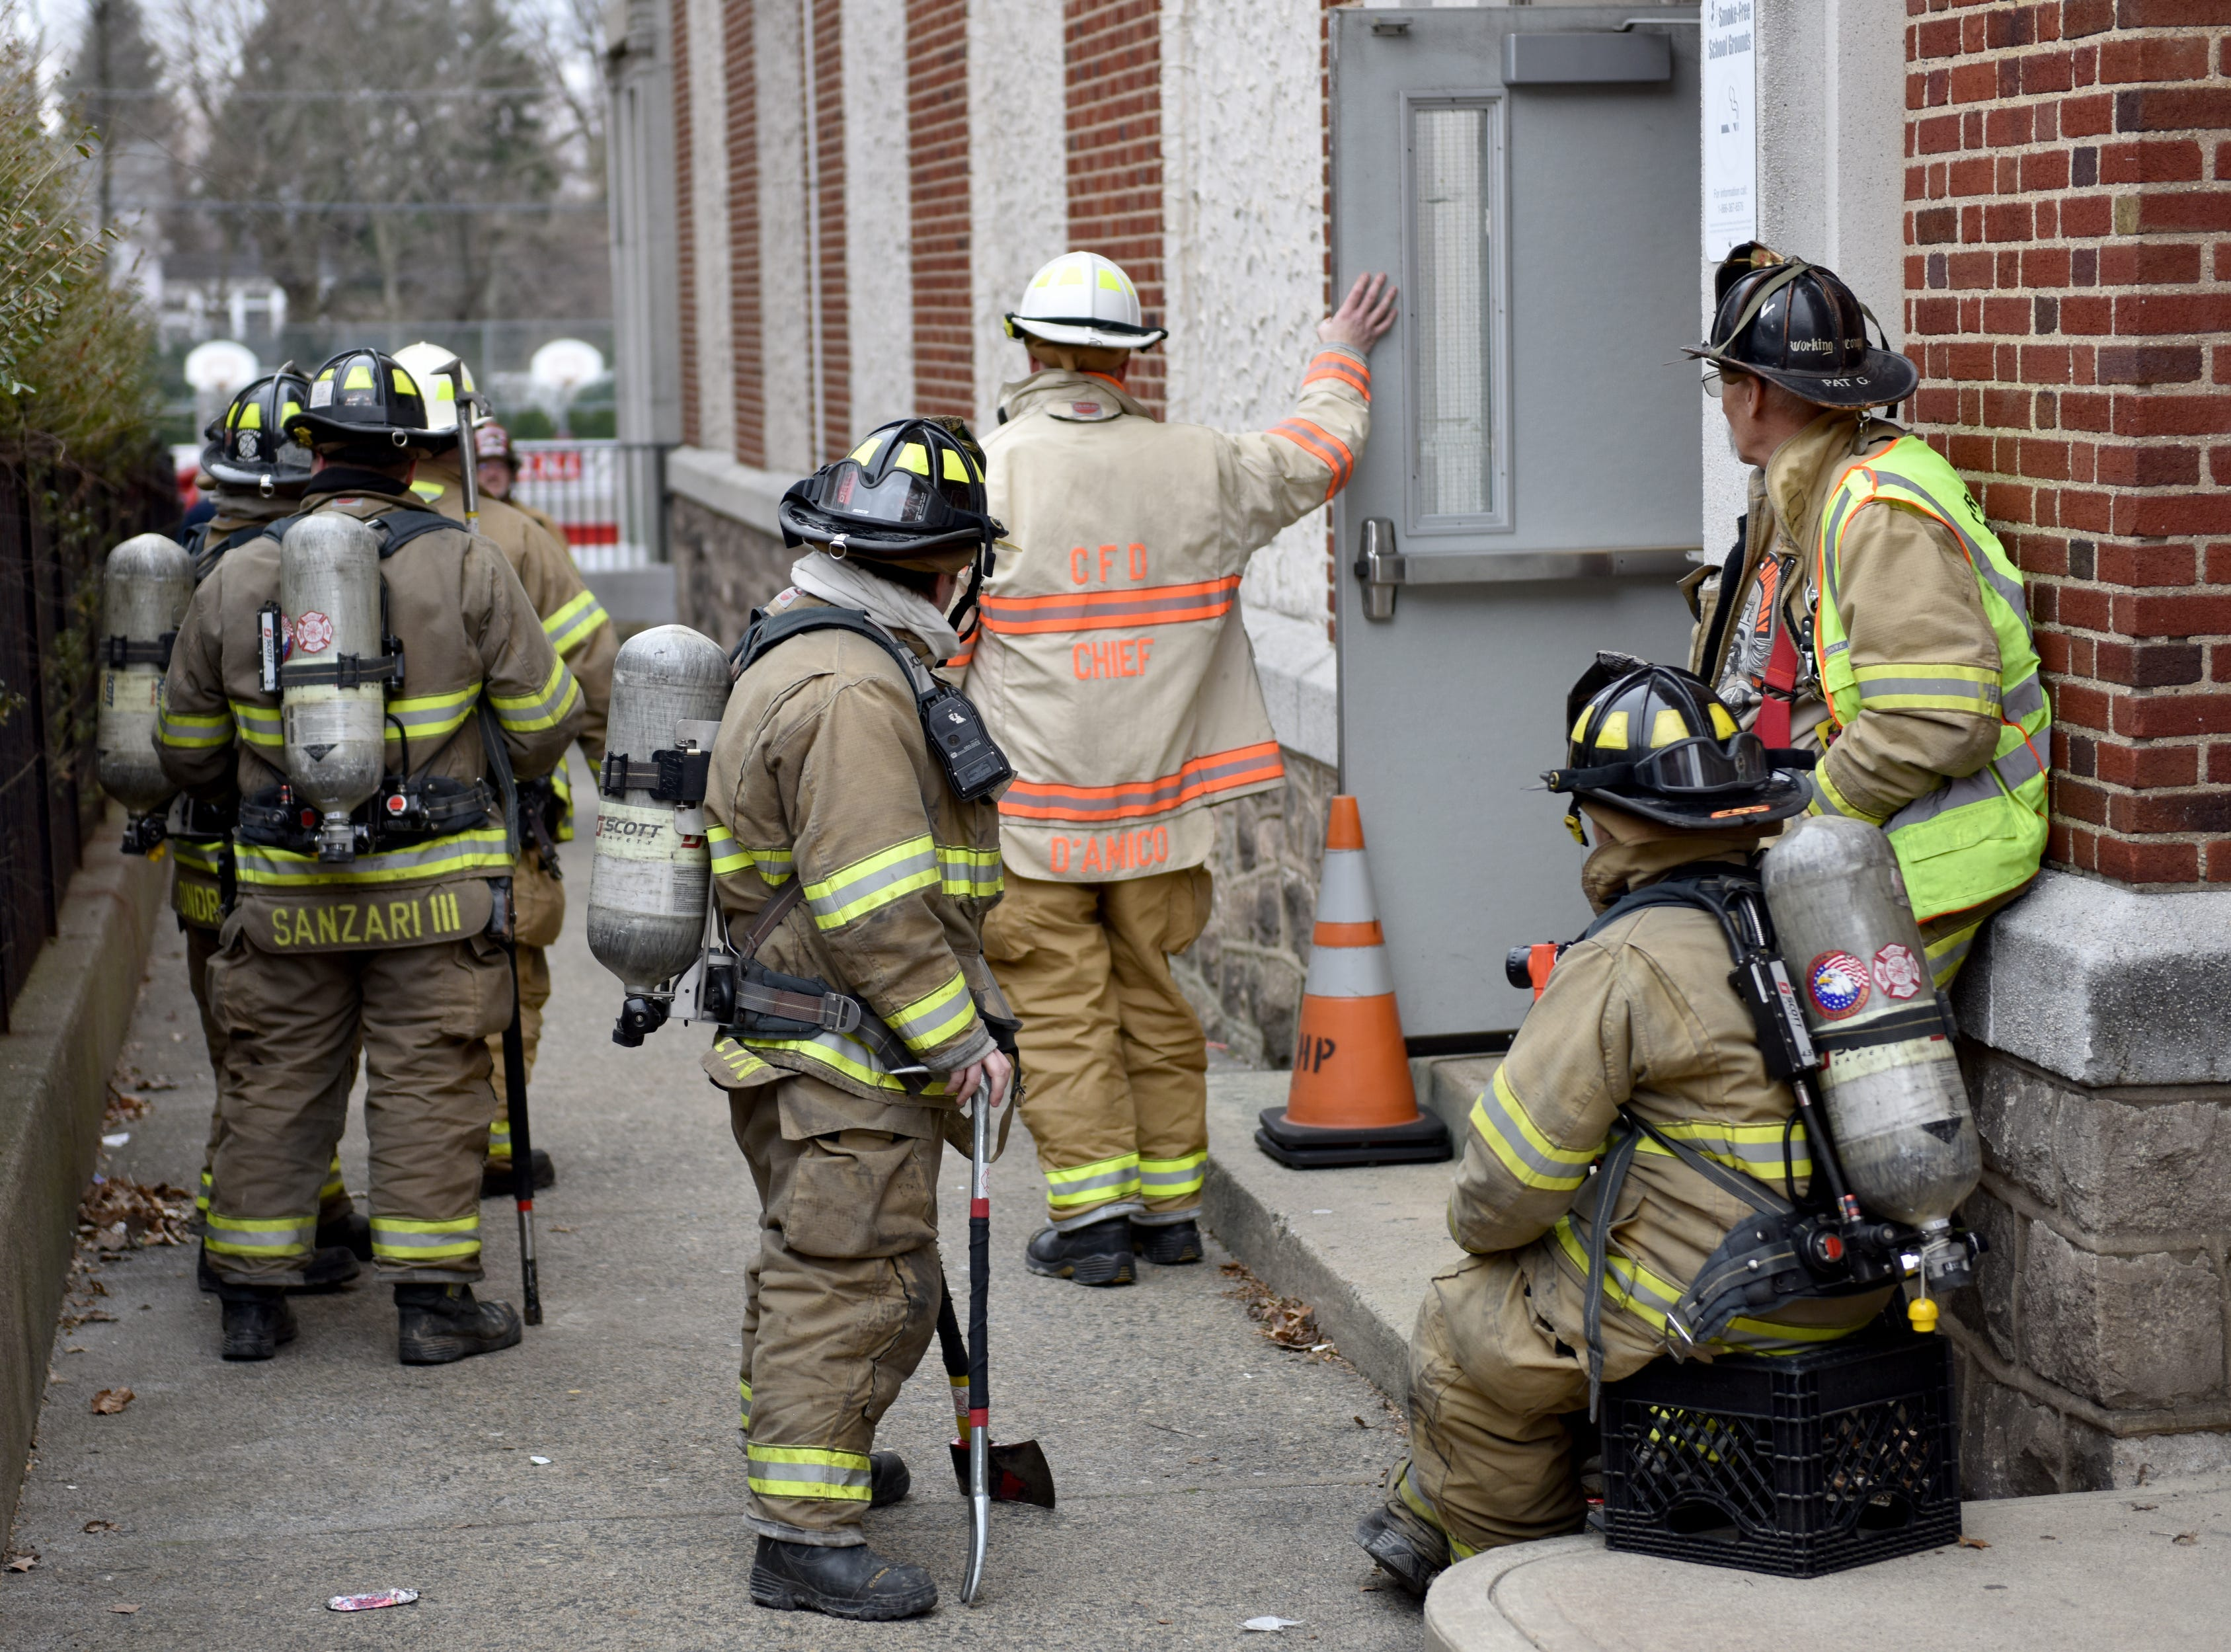 Fire companies from surround towns came to investigate a smoke condition at Alfred S. Faust Intermediate School inEast Rutherford on Monday March 25, 2019.